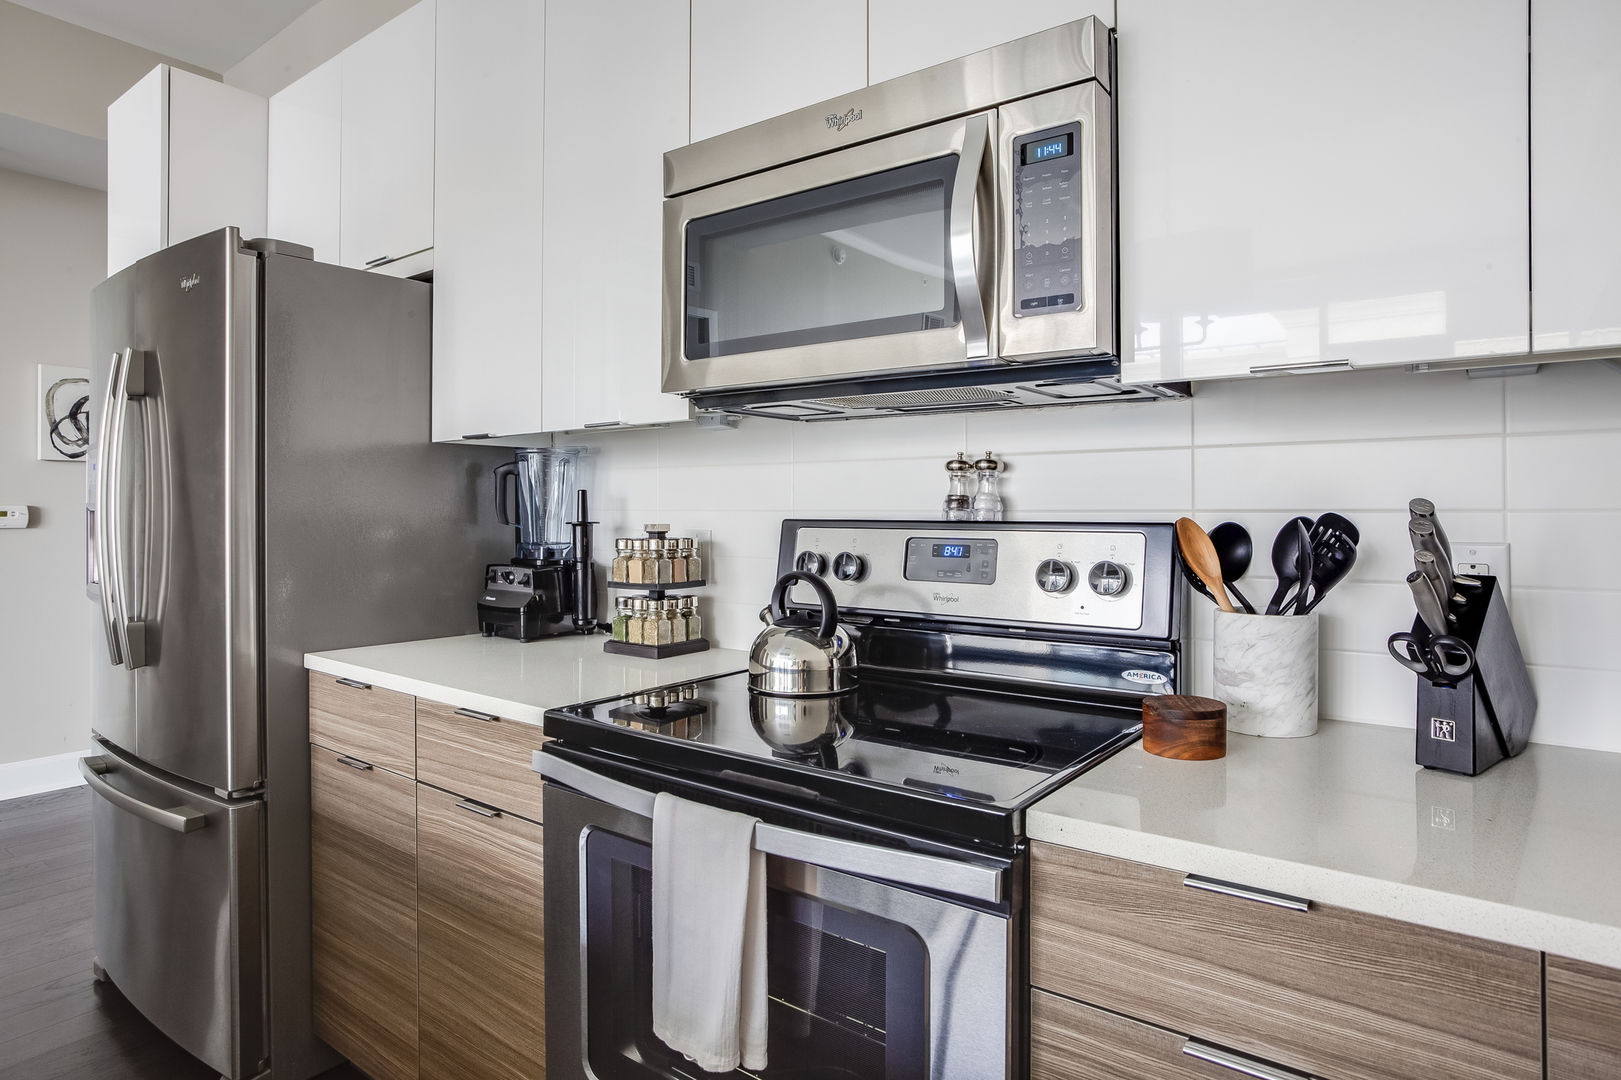 This Atlanta Vacation Rental features a kitchen with microwave, oven, and stove